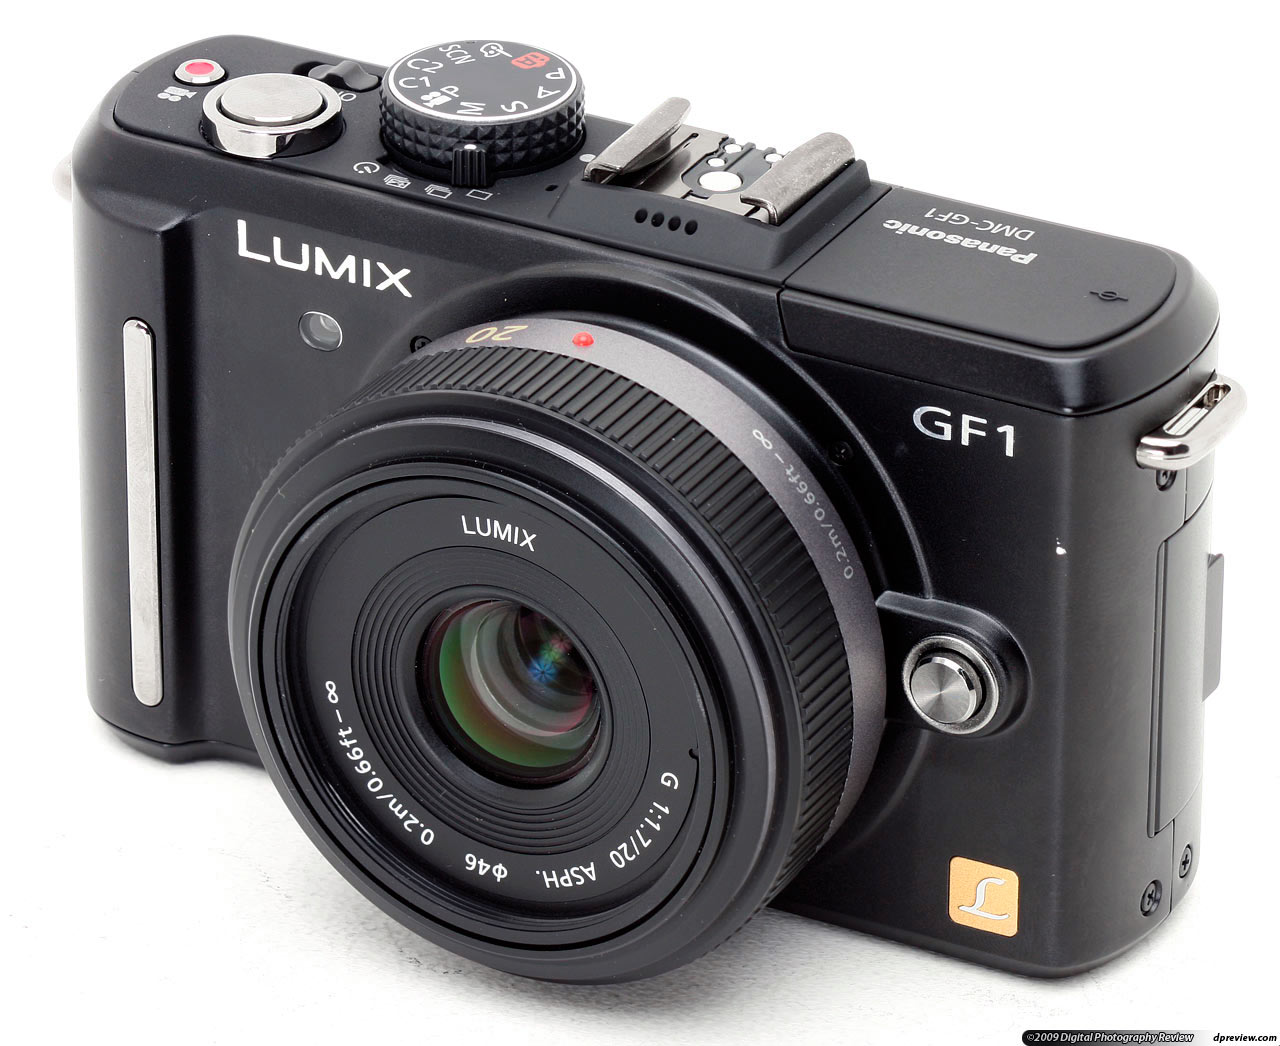 Panasonic Dmc Auto Electrical Wiring Diagram 2000 Tomos Lx Lumix Gf1 Review Digital Photography